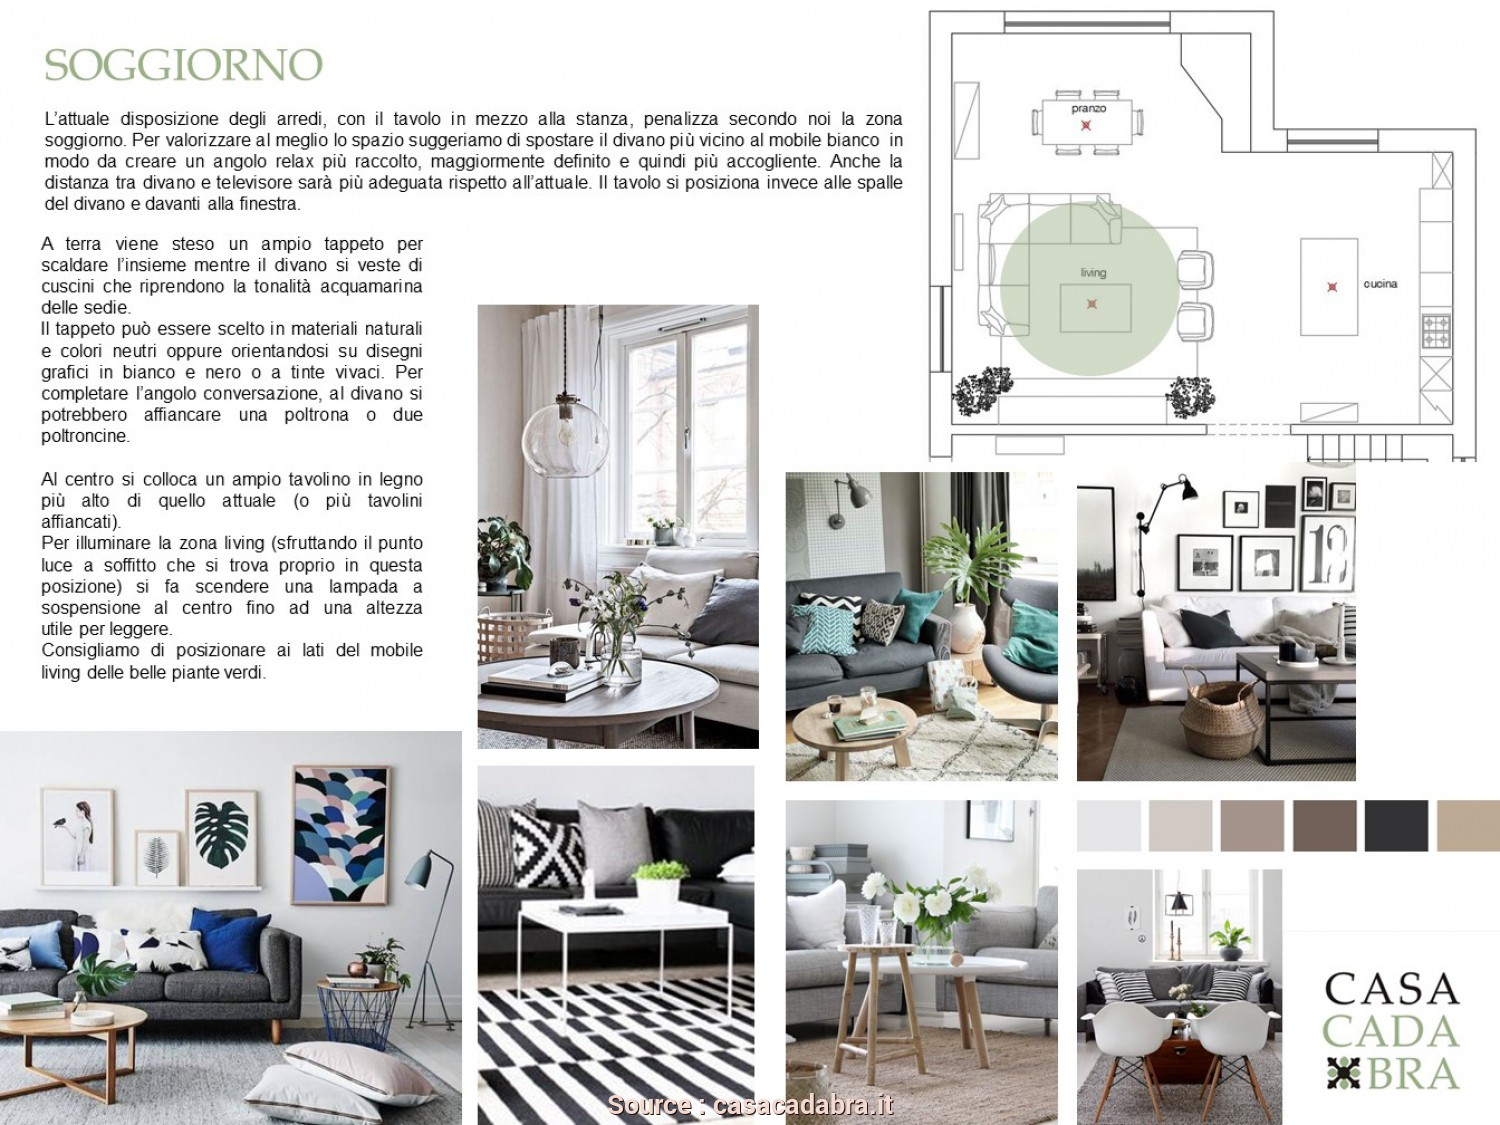 Distanza Divano Tv, Maestoso Progetto Interior Design Relooking Styling Casacadabra, Carmen (7)